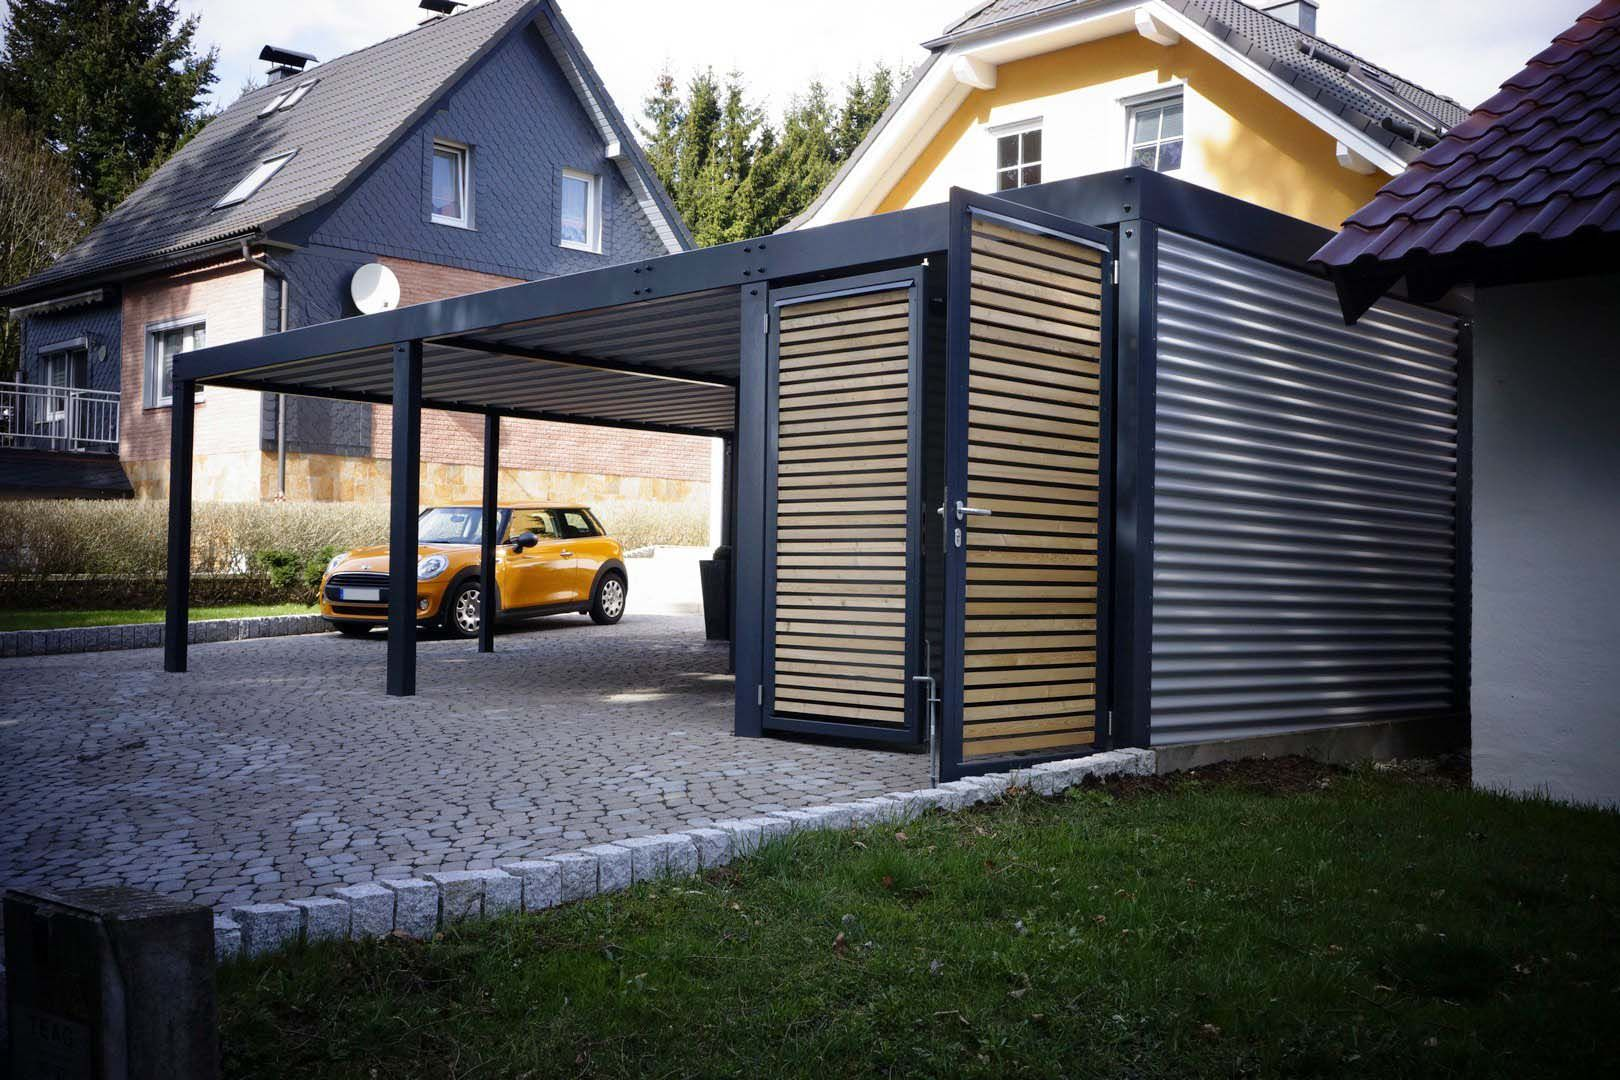 metallcarport stahlcarport kaufen metall carport preise. Black Bedroom Furniture Sets. Home Design Ideas